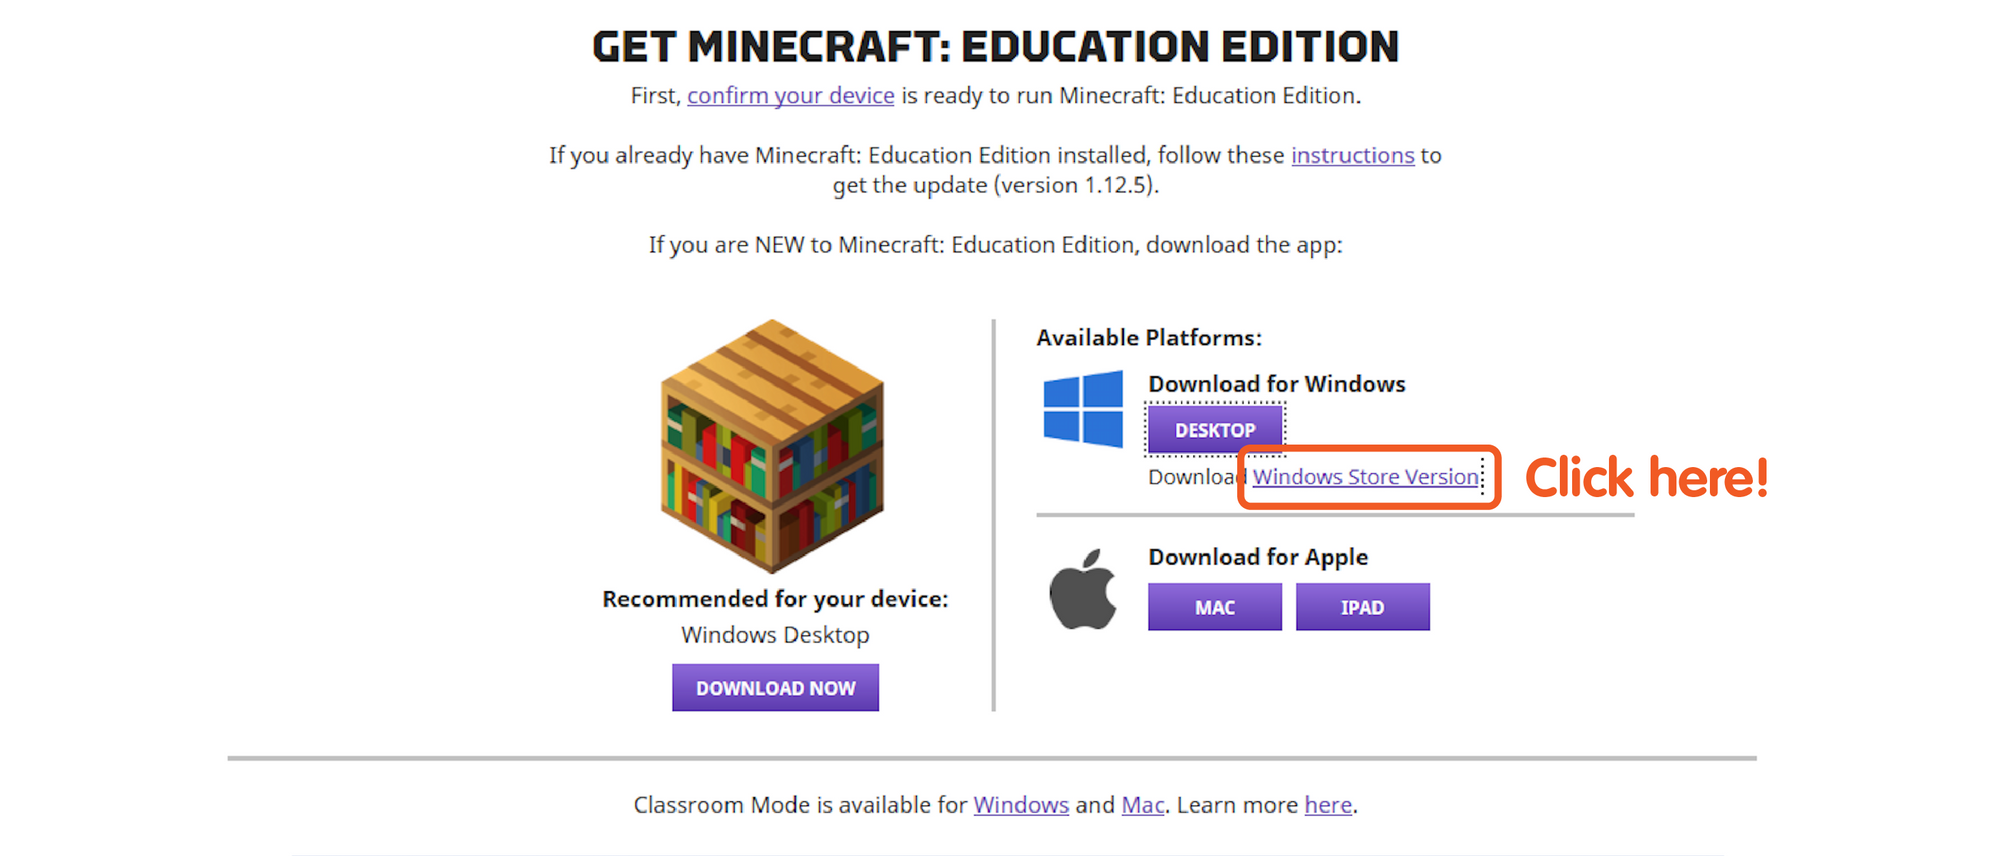 Getting started with Minecraft Education Edition